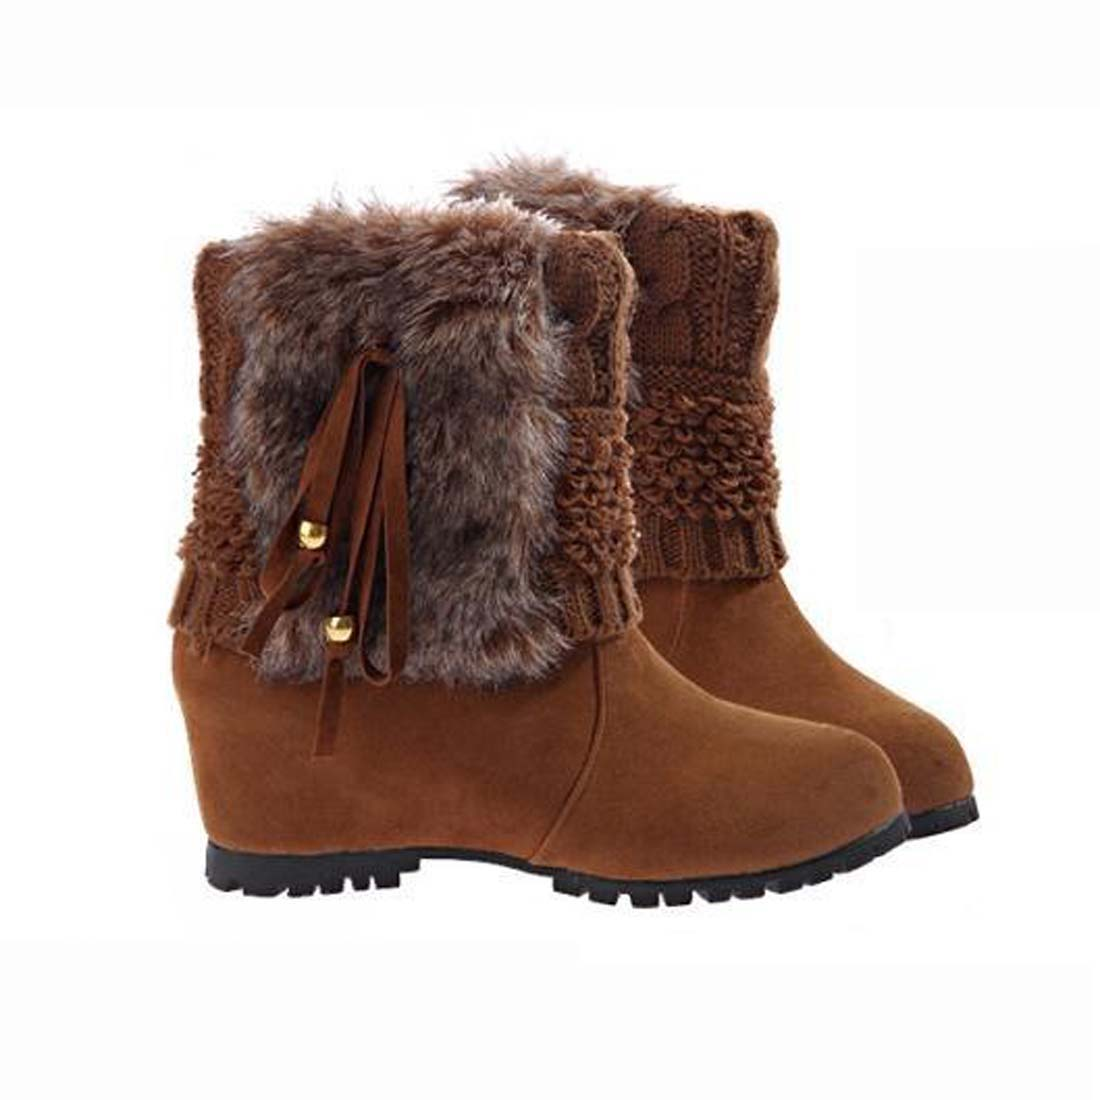 2017 New Arrival Women Winter Boots Botas Femininas Plush Fur  Warm Snow Boots Fashion high wedges Ankle Boots<br><br>Aliexpress